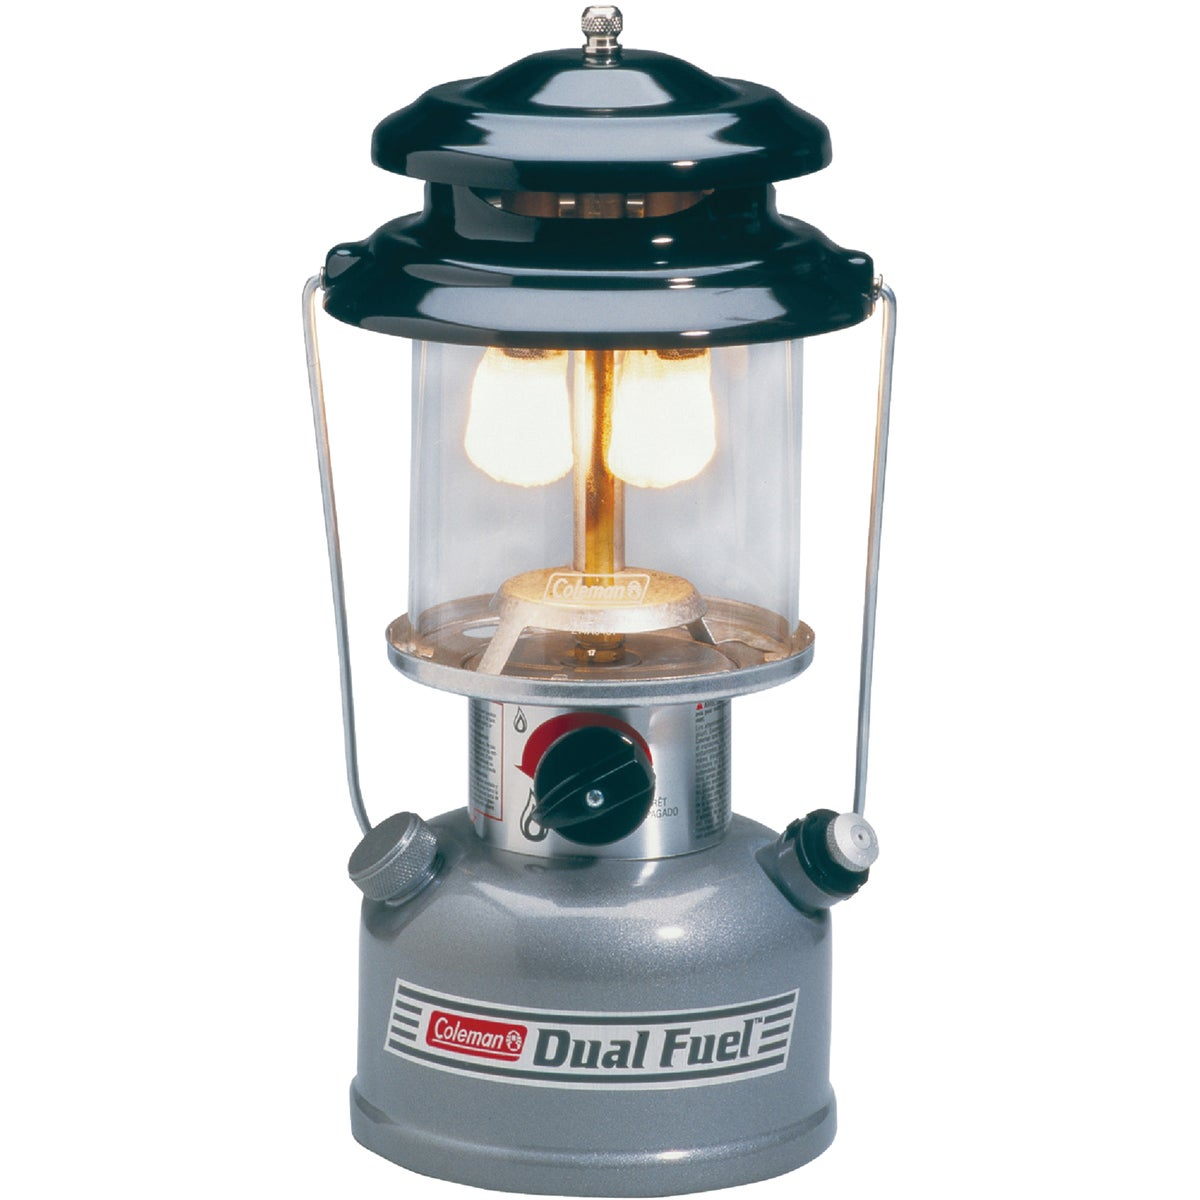 2MANTL DUAL FUEL LANTERN - 3000000923 by Coleman